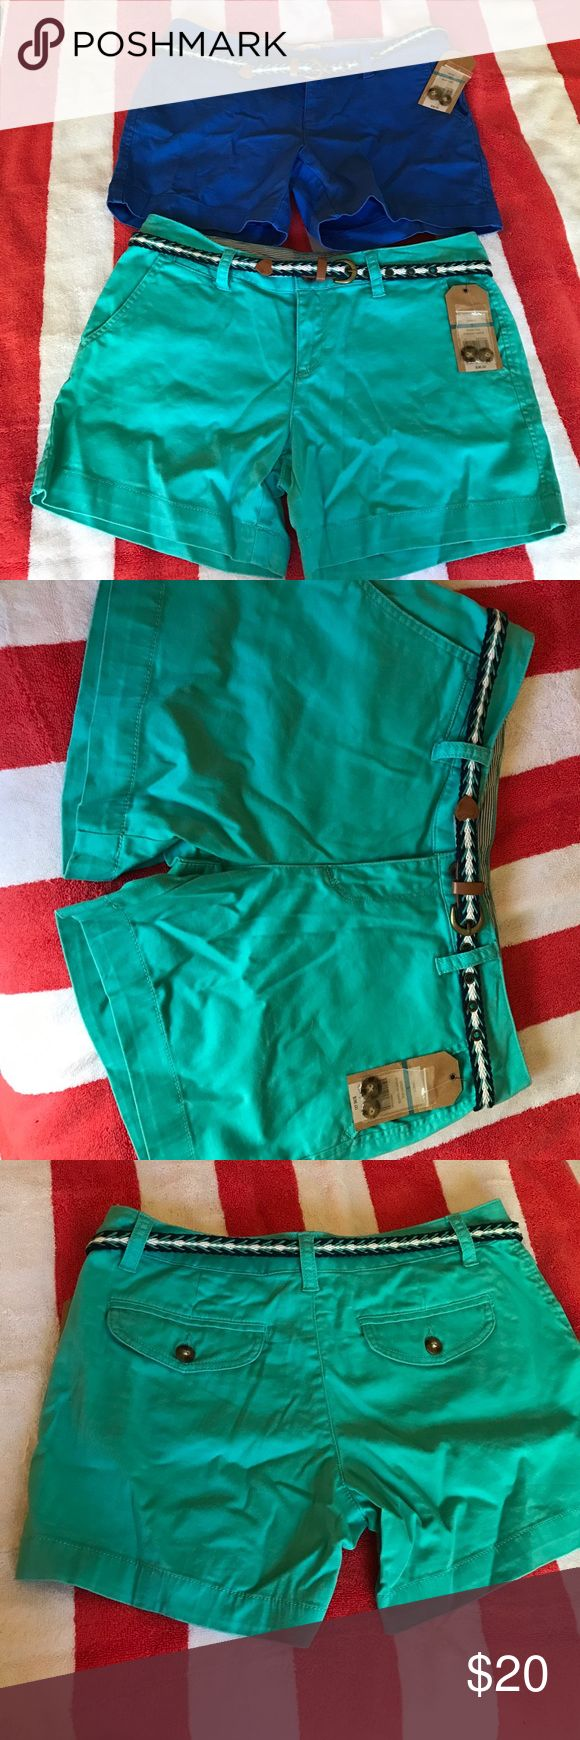 Adorable shorts bundle! NWT! Two pair of Red Camel shorts, 95% cotton, 2% spandex,  one teal and the other cobalt blue, rear pockets, each comes with its own belt. Red Camel Shorts